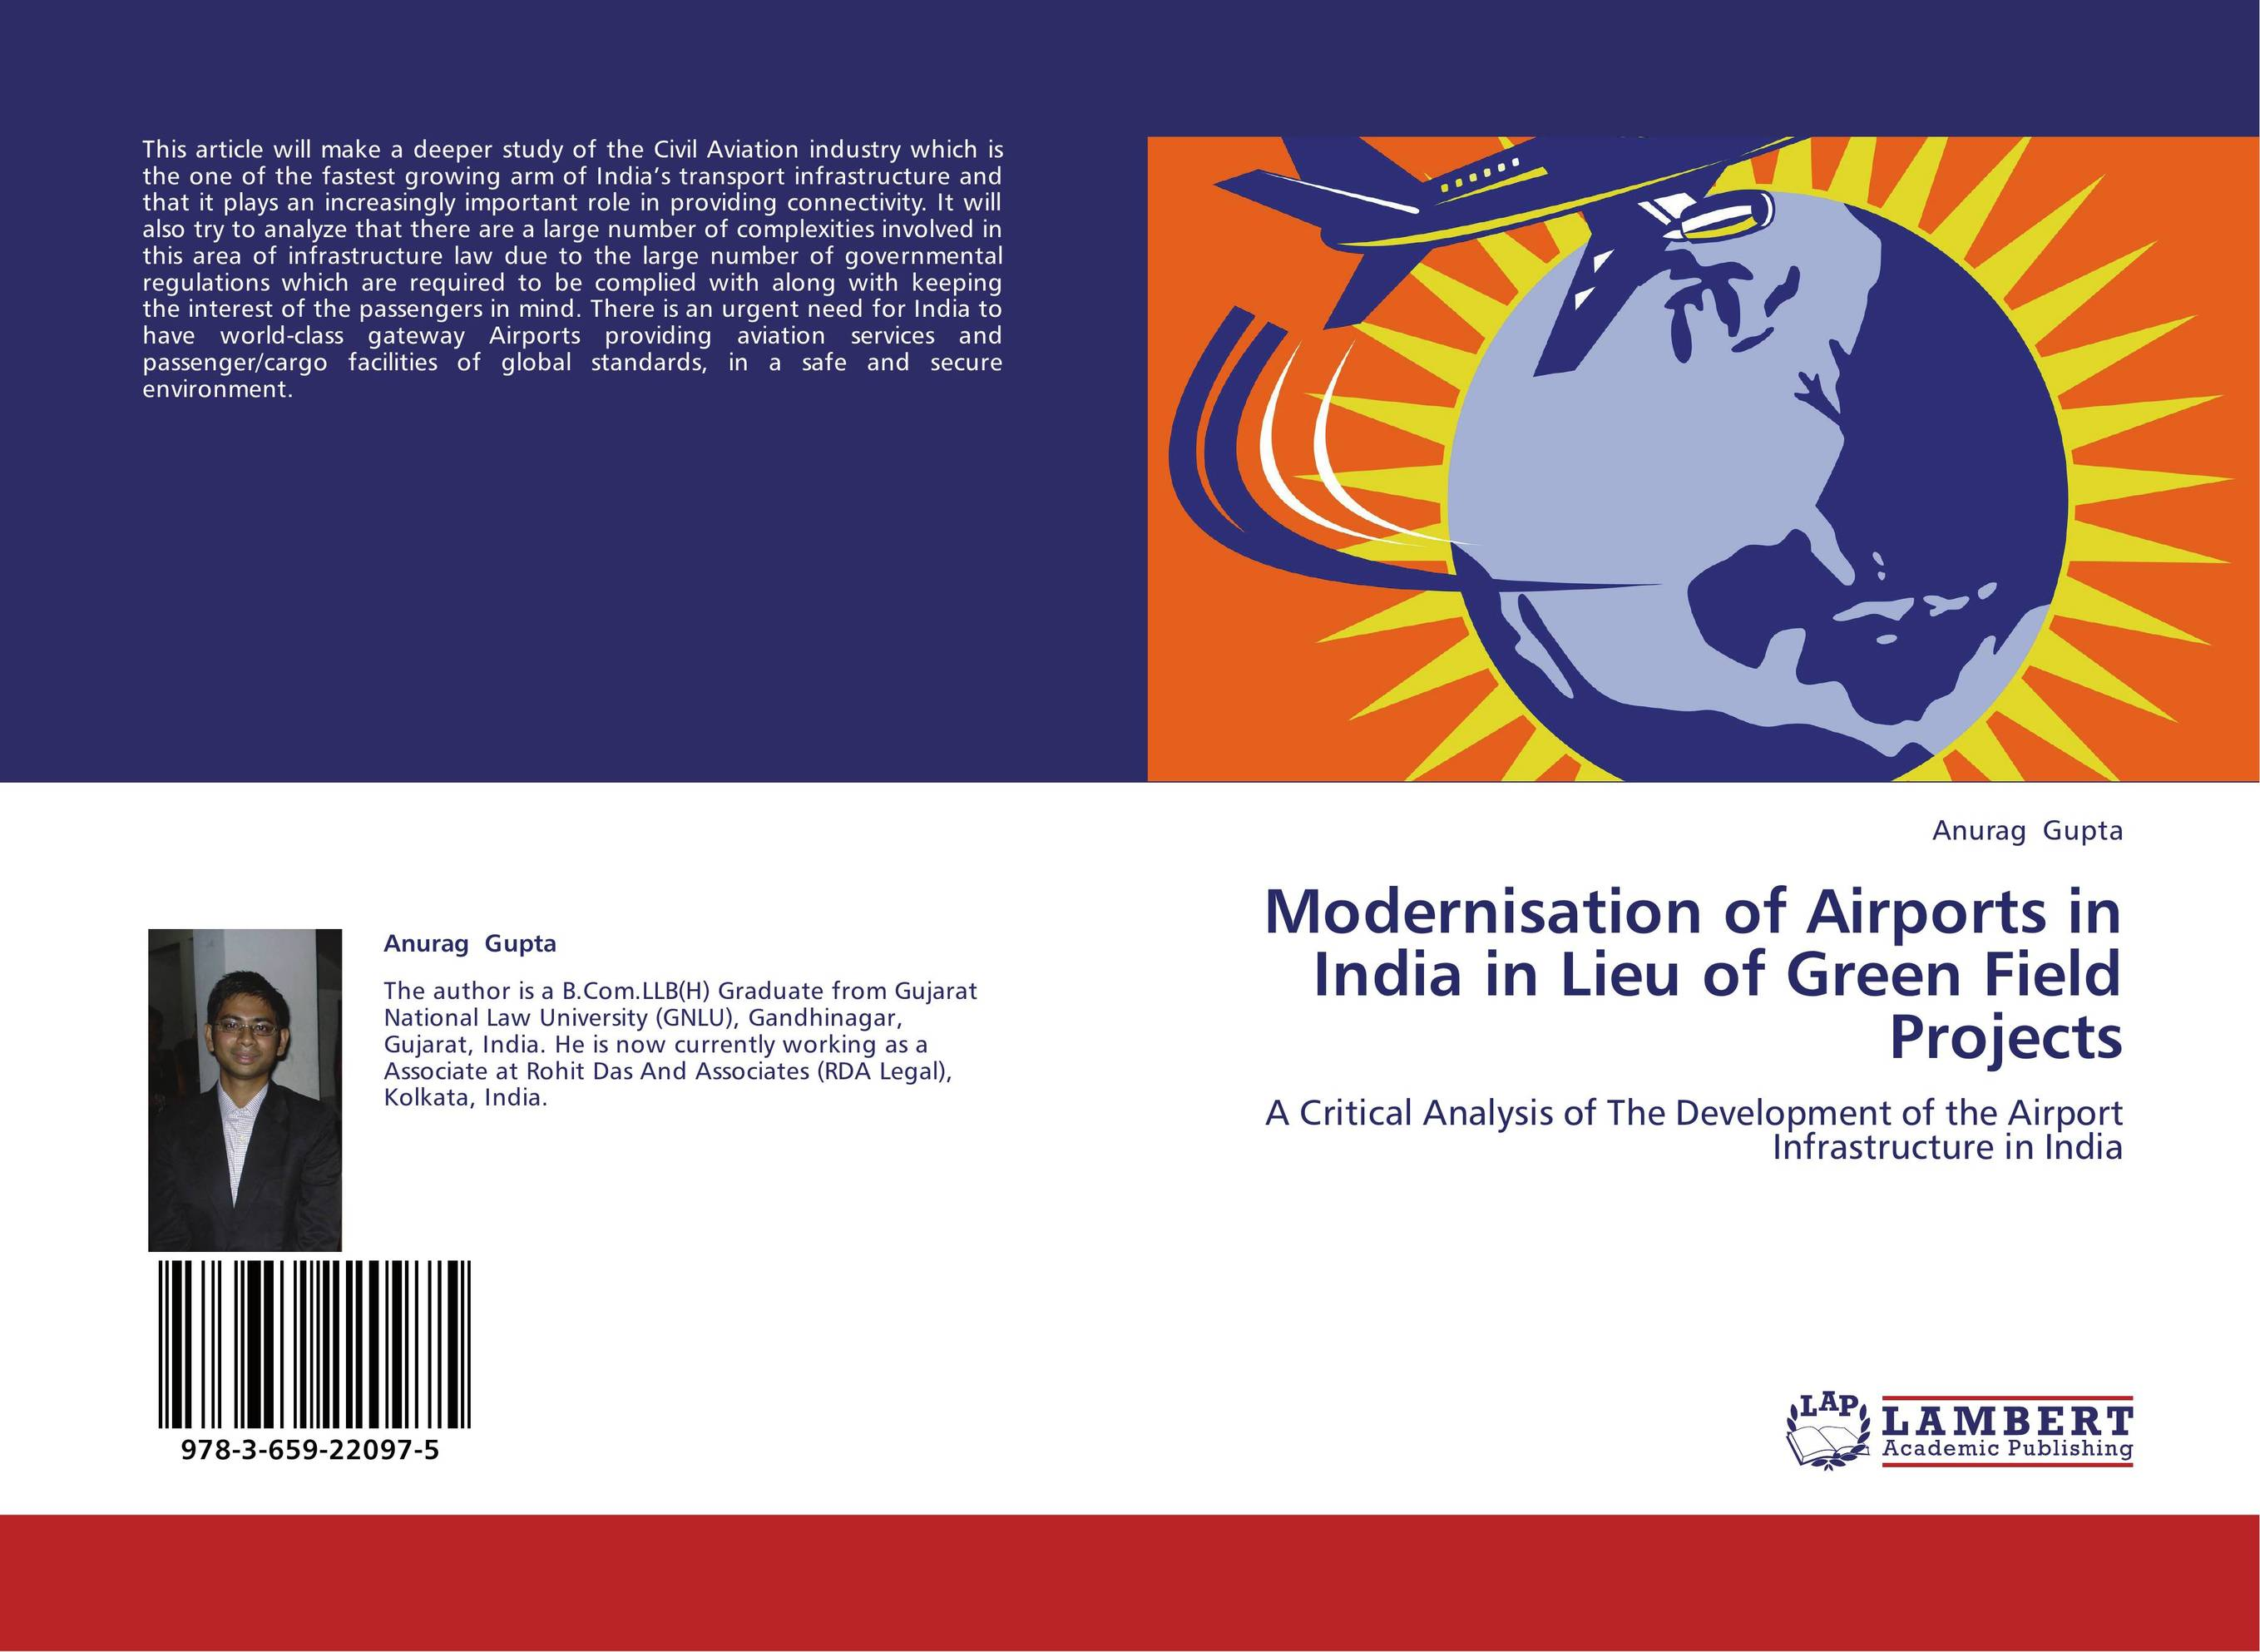 indian civil aviation industry Issues and challenges of indian aviation industry: a case study indian civil aviation industry is among the top ten in the world, with a size of $16 billion.